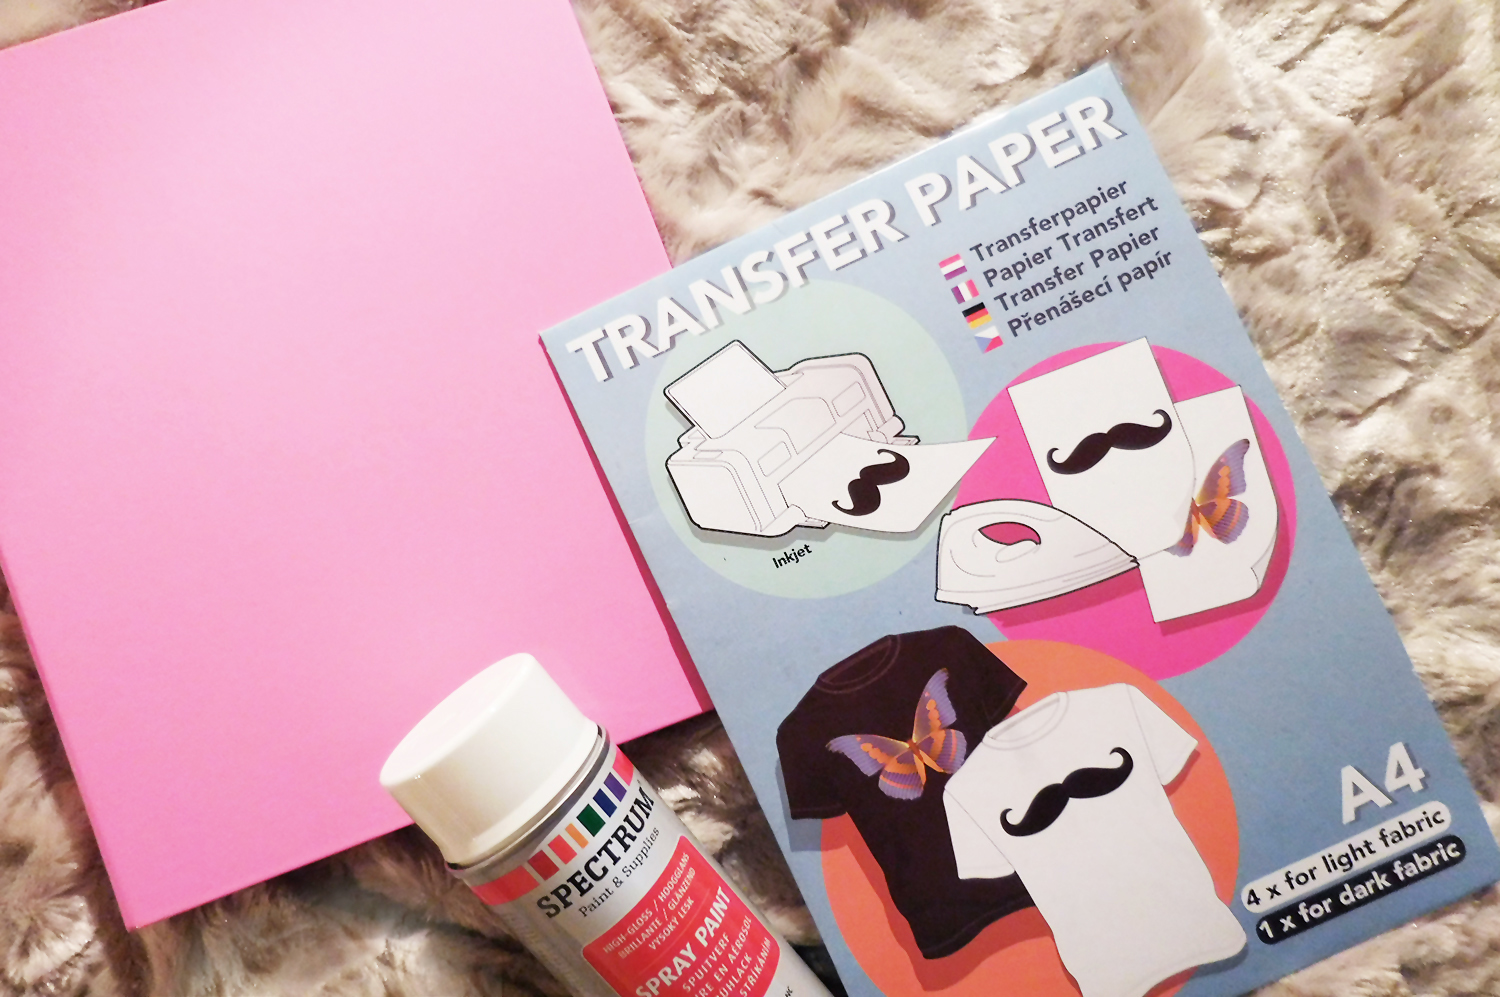 Haul action for Transfer papier action